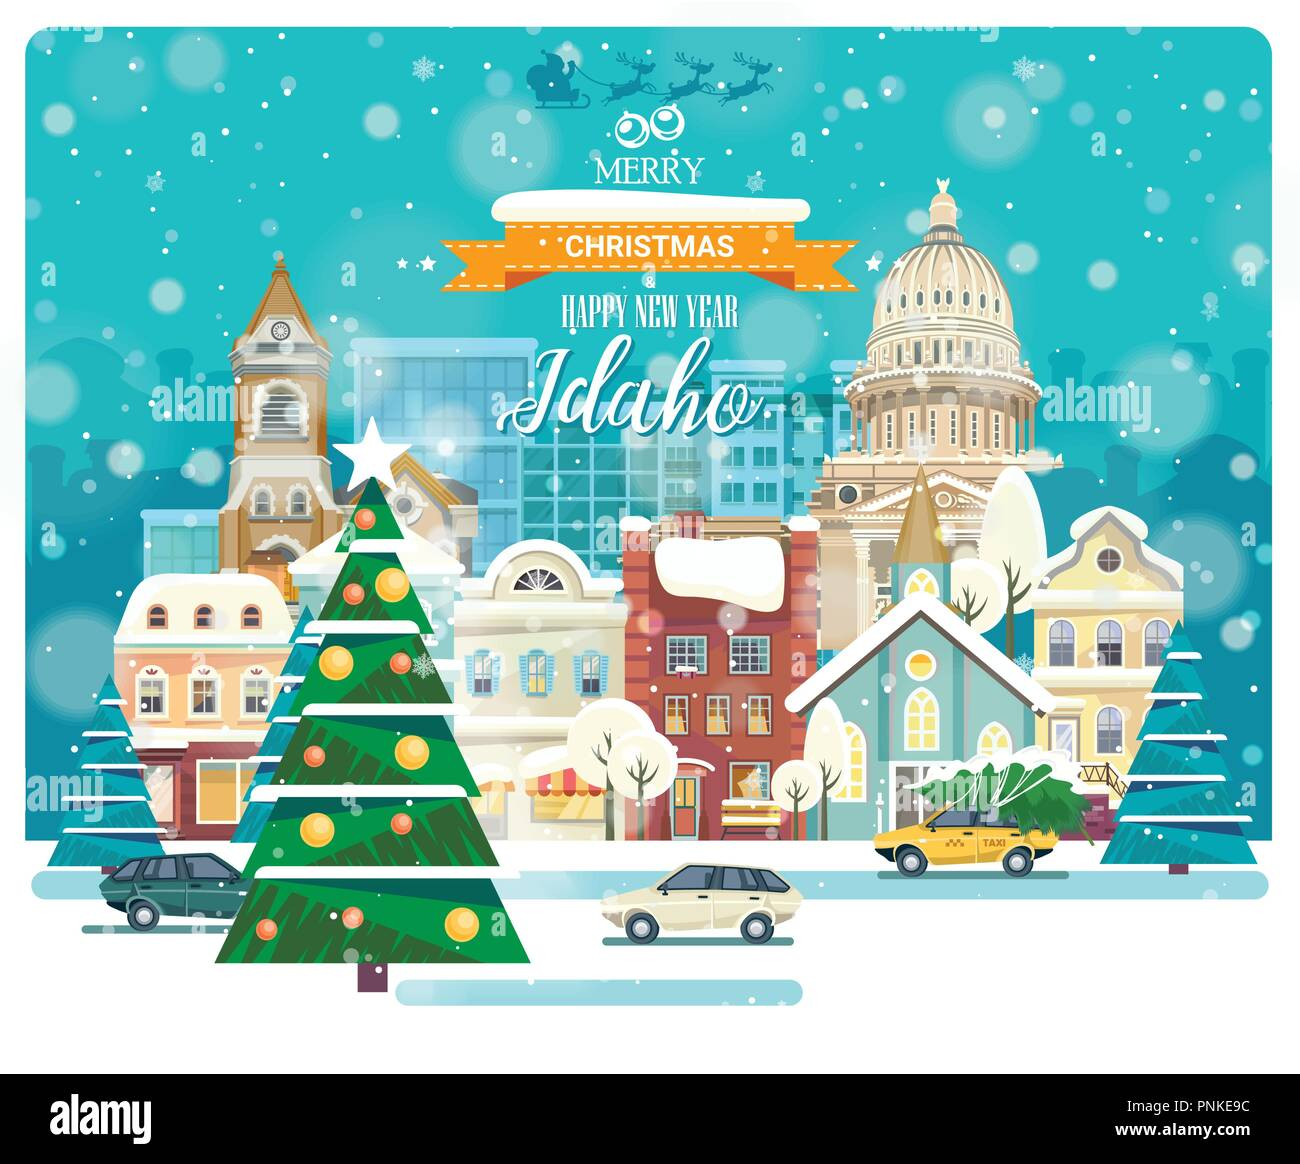 Merry Christmas and Happy New Year in Idaho. Greeting festive card from the USA. Winter snowing city with cute cozy houses and snowflakes. - Stock Vector